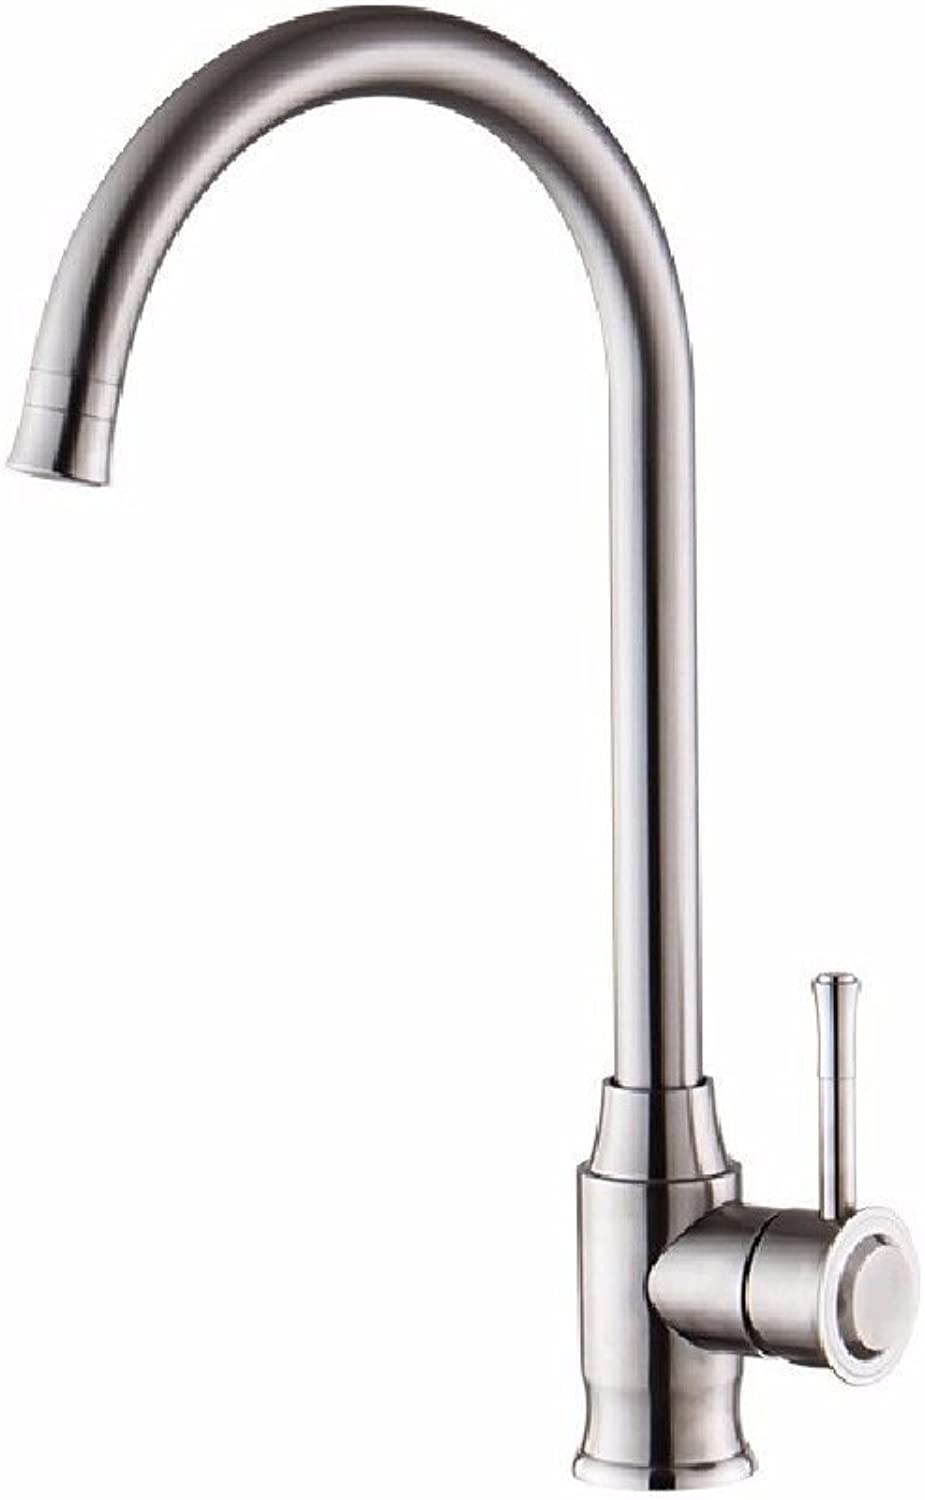 Commercial Single Lever Pull Down Kitchen Sink Faucet Brass Constructed Polished 304 Stainless Steel Kitchen Faucet Double Water Hot and Cold Sink Faucet Double Temperature Sink